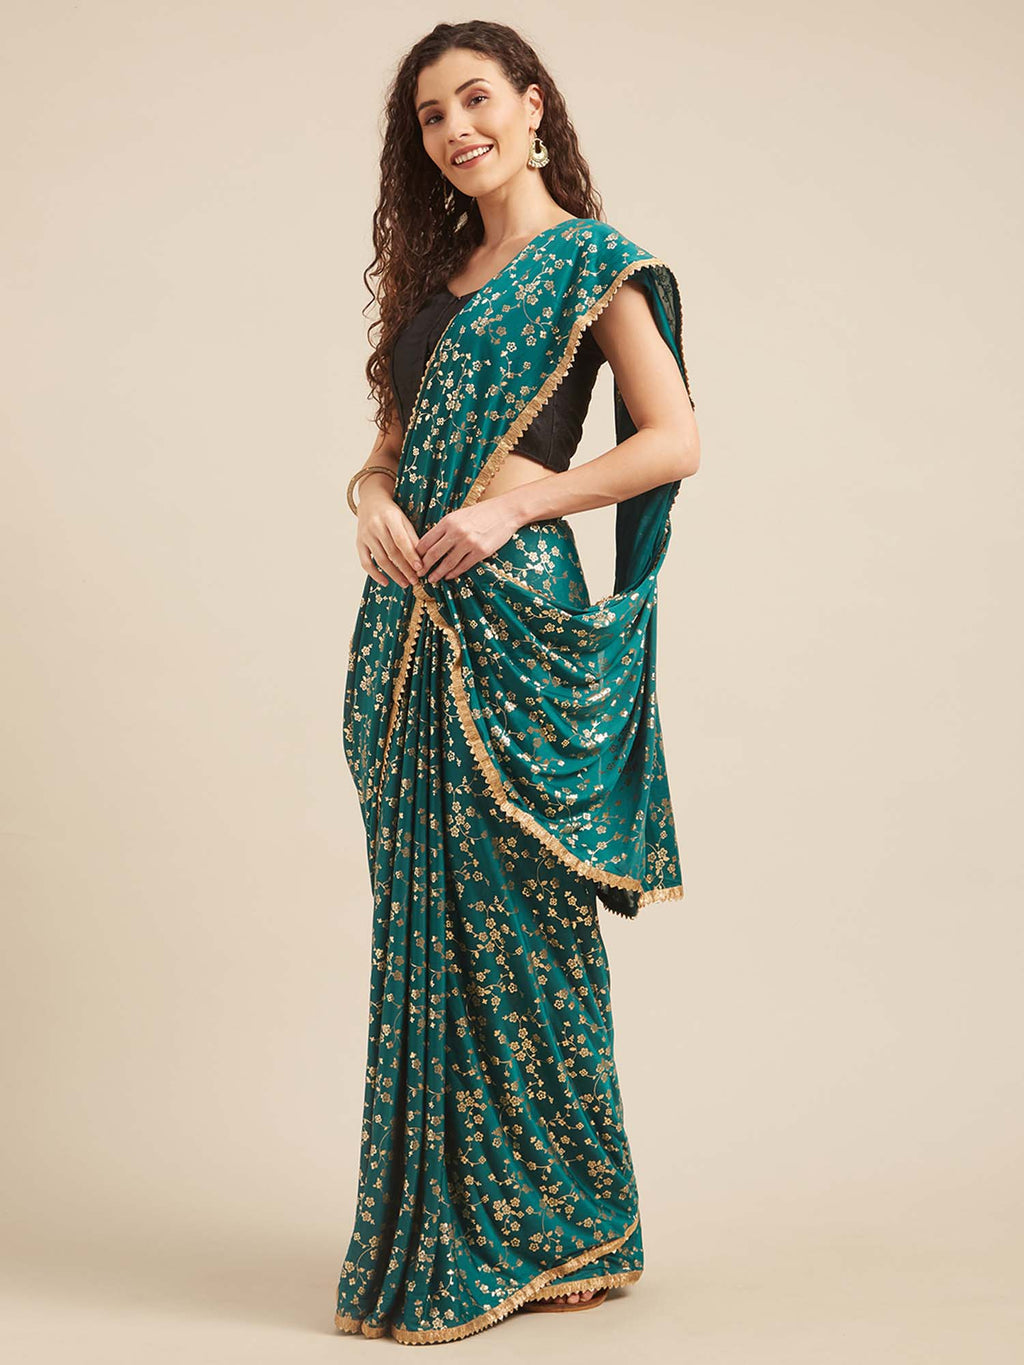 Teal Green Poly Crepe Foil Print Saree - Riviera Closet